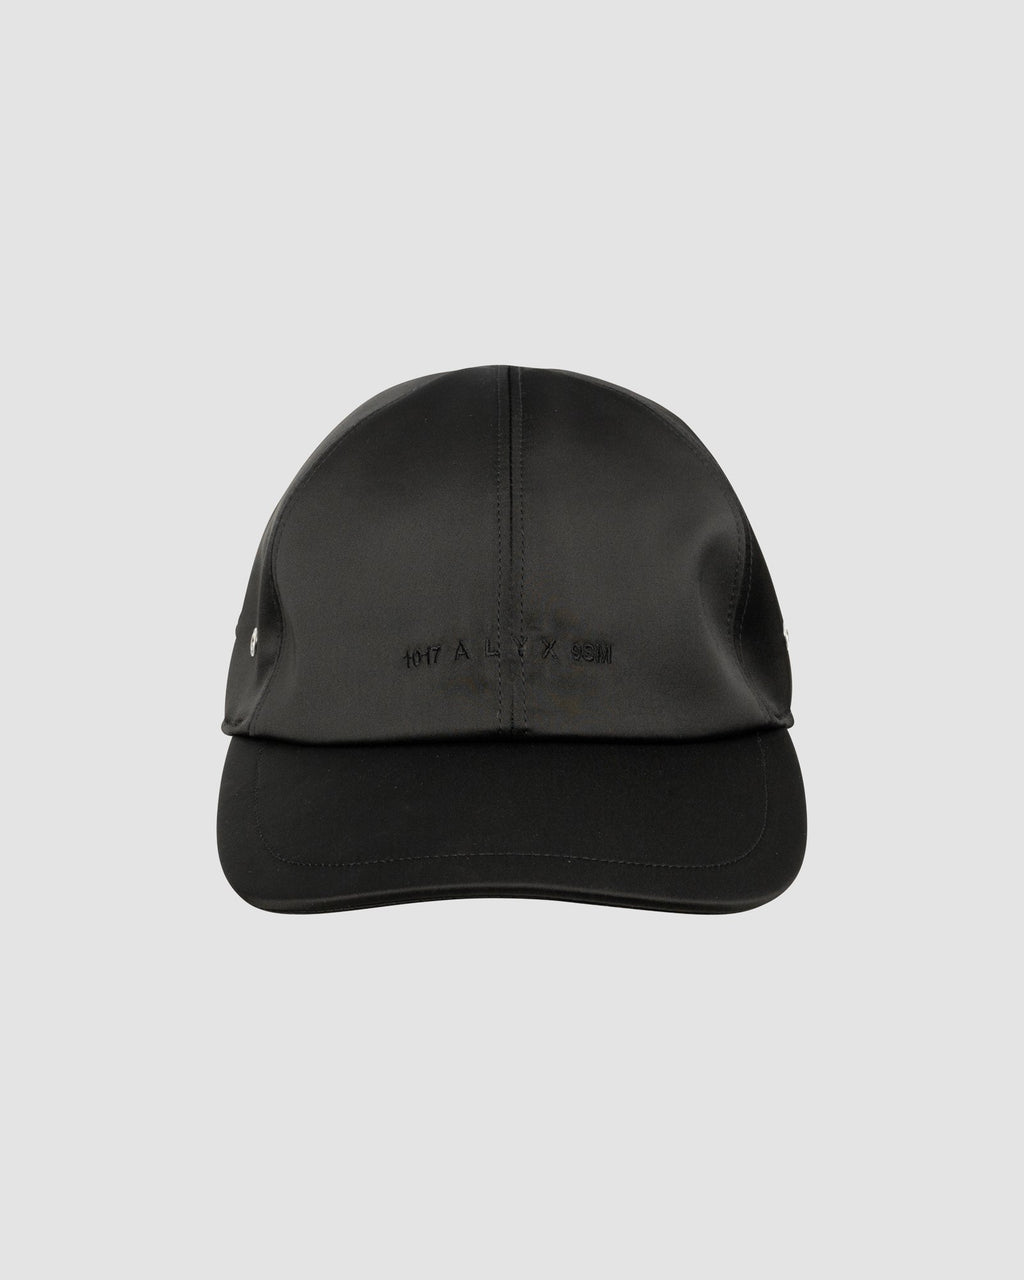 SATIN LOGO HAT W/ BUCKLE